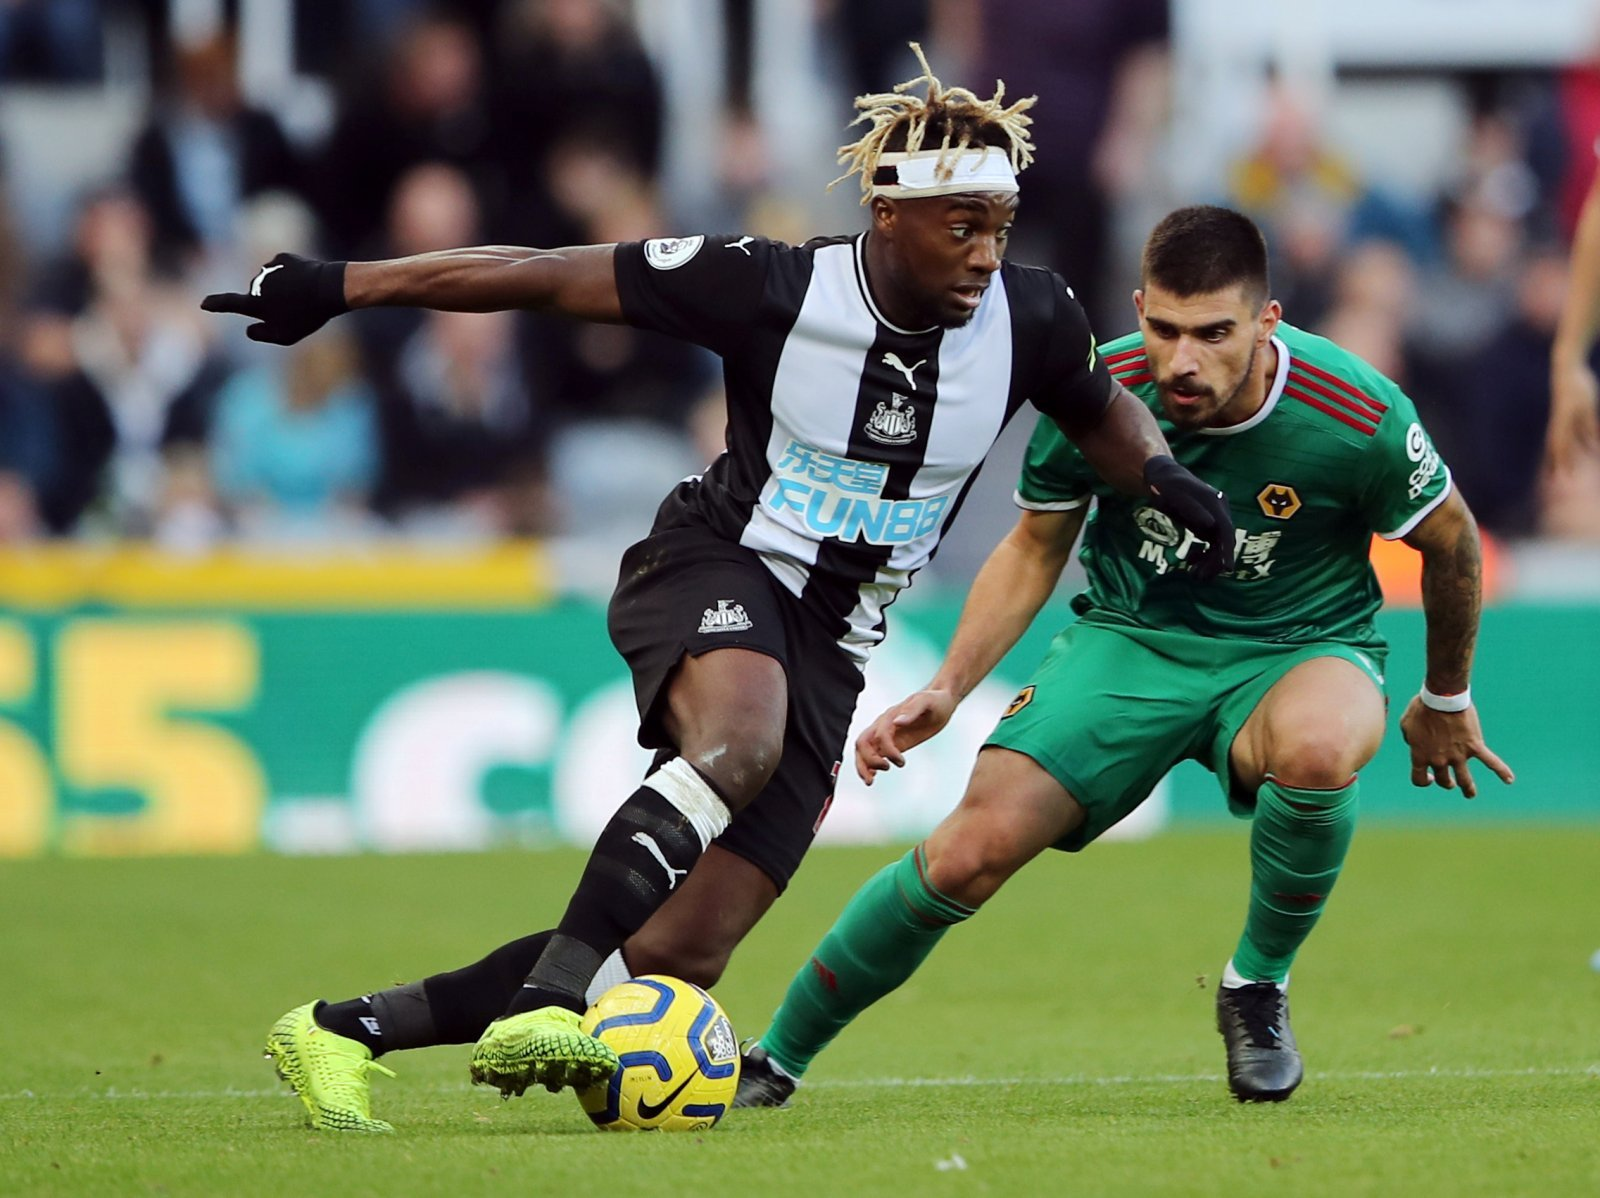 Newcastle United: Fans love Allan Saint-Maximin's dig at Sunderland